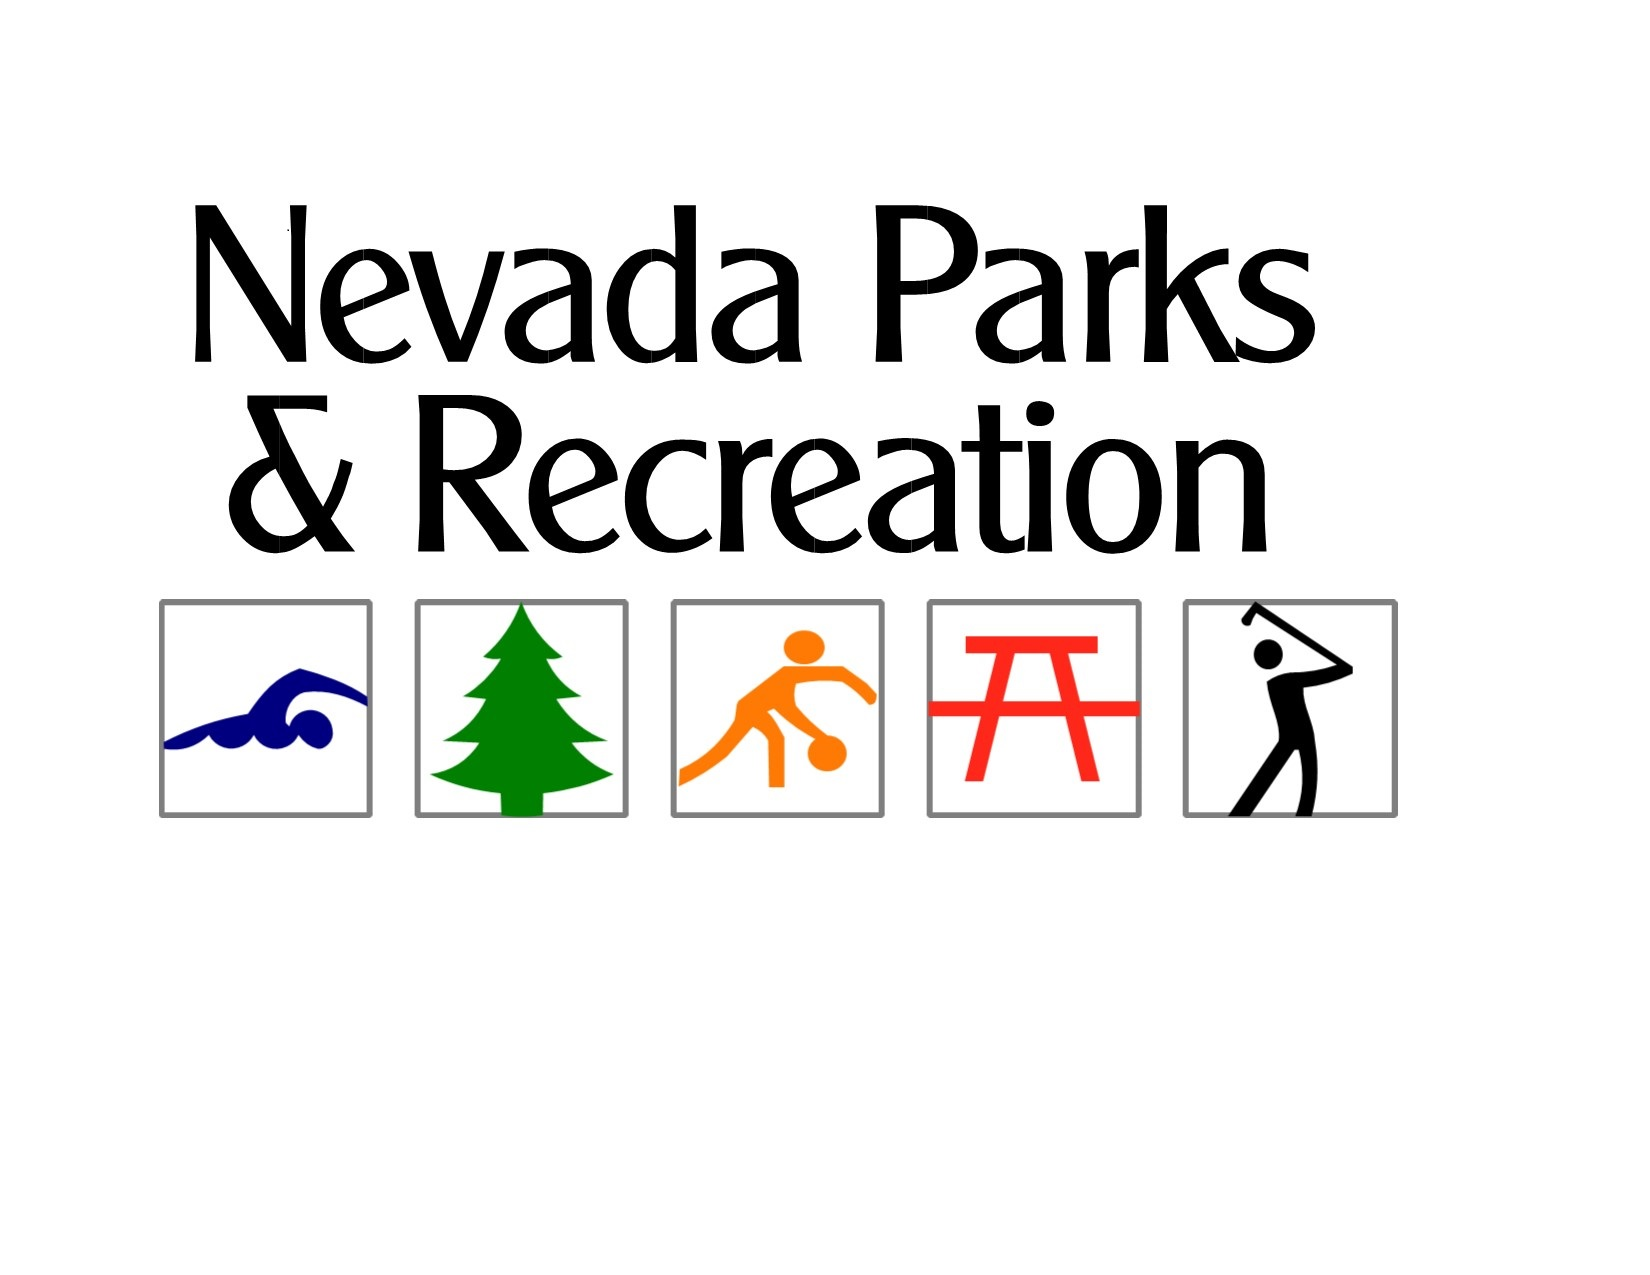 Nevada Parks and Recreation